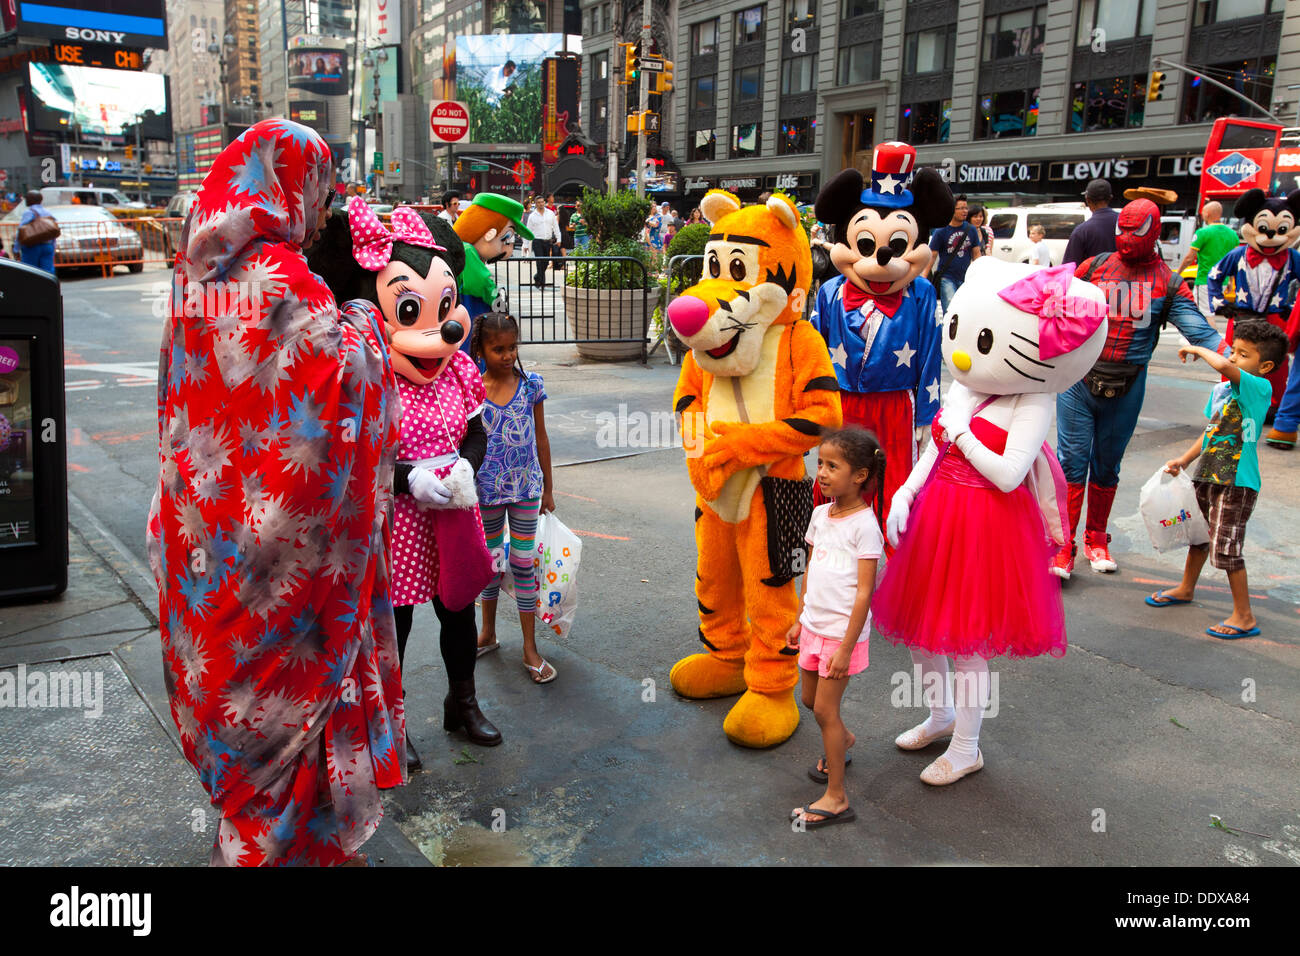 cartoon characters times square manhattan new york united states